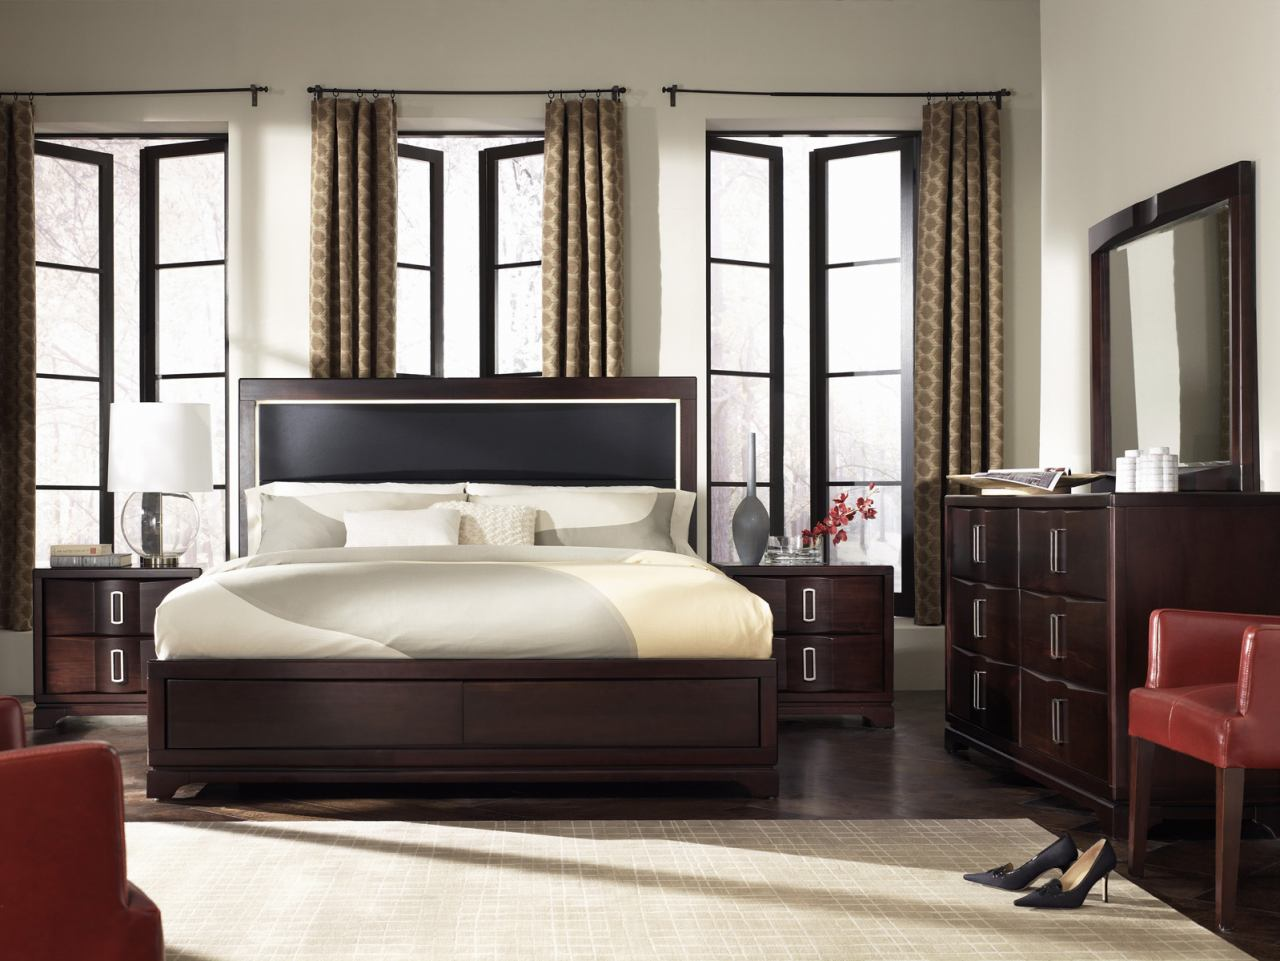 Casana Brooke 4 Piece Upholstered Panel Bedroom Set in Deep Coffee